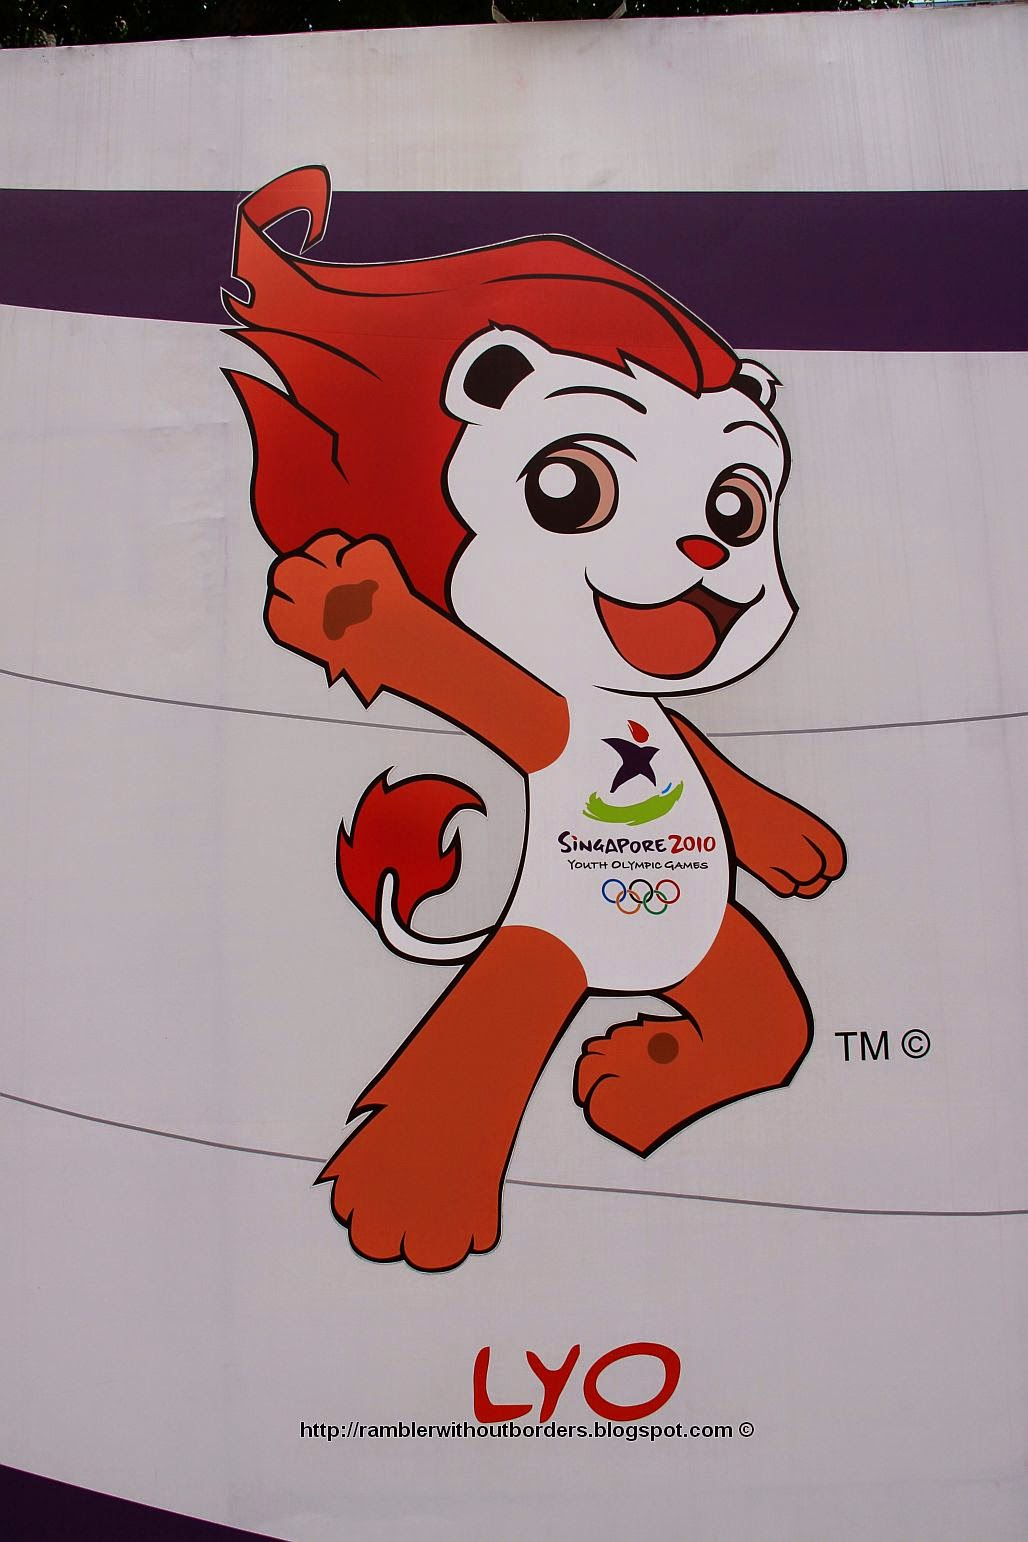 Lyo, mascots of Singapore Olympic Youth Games 2010